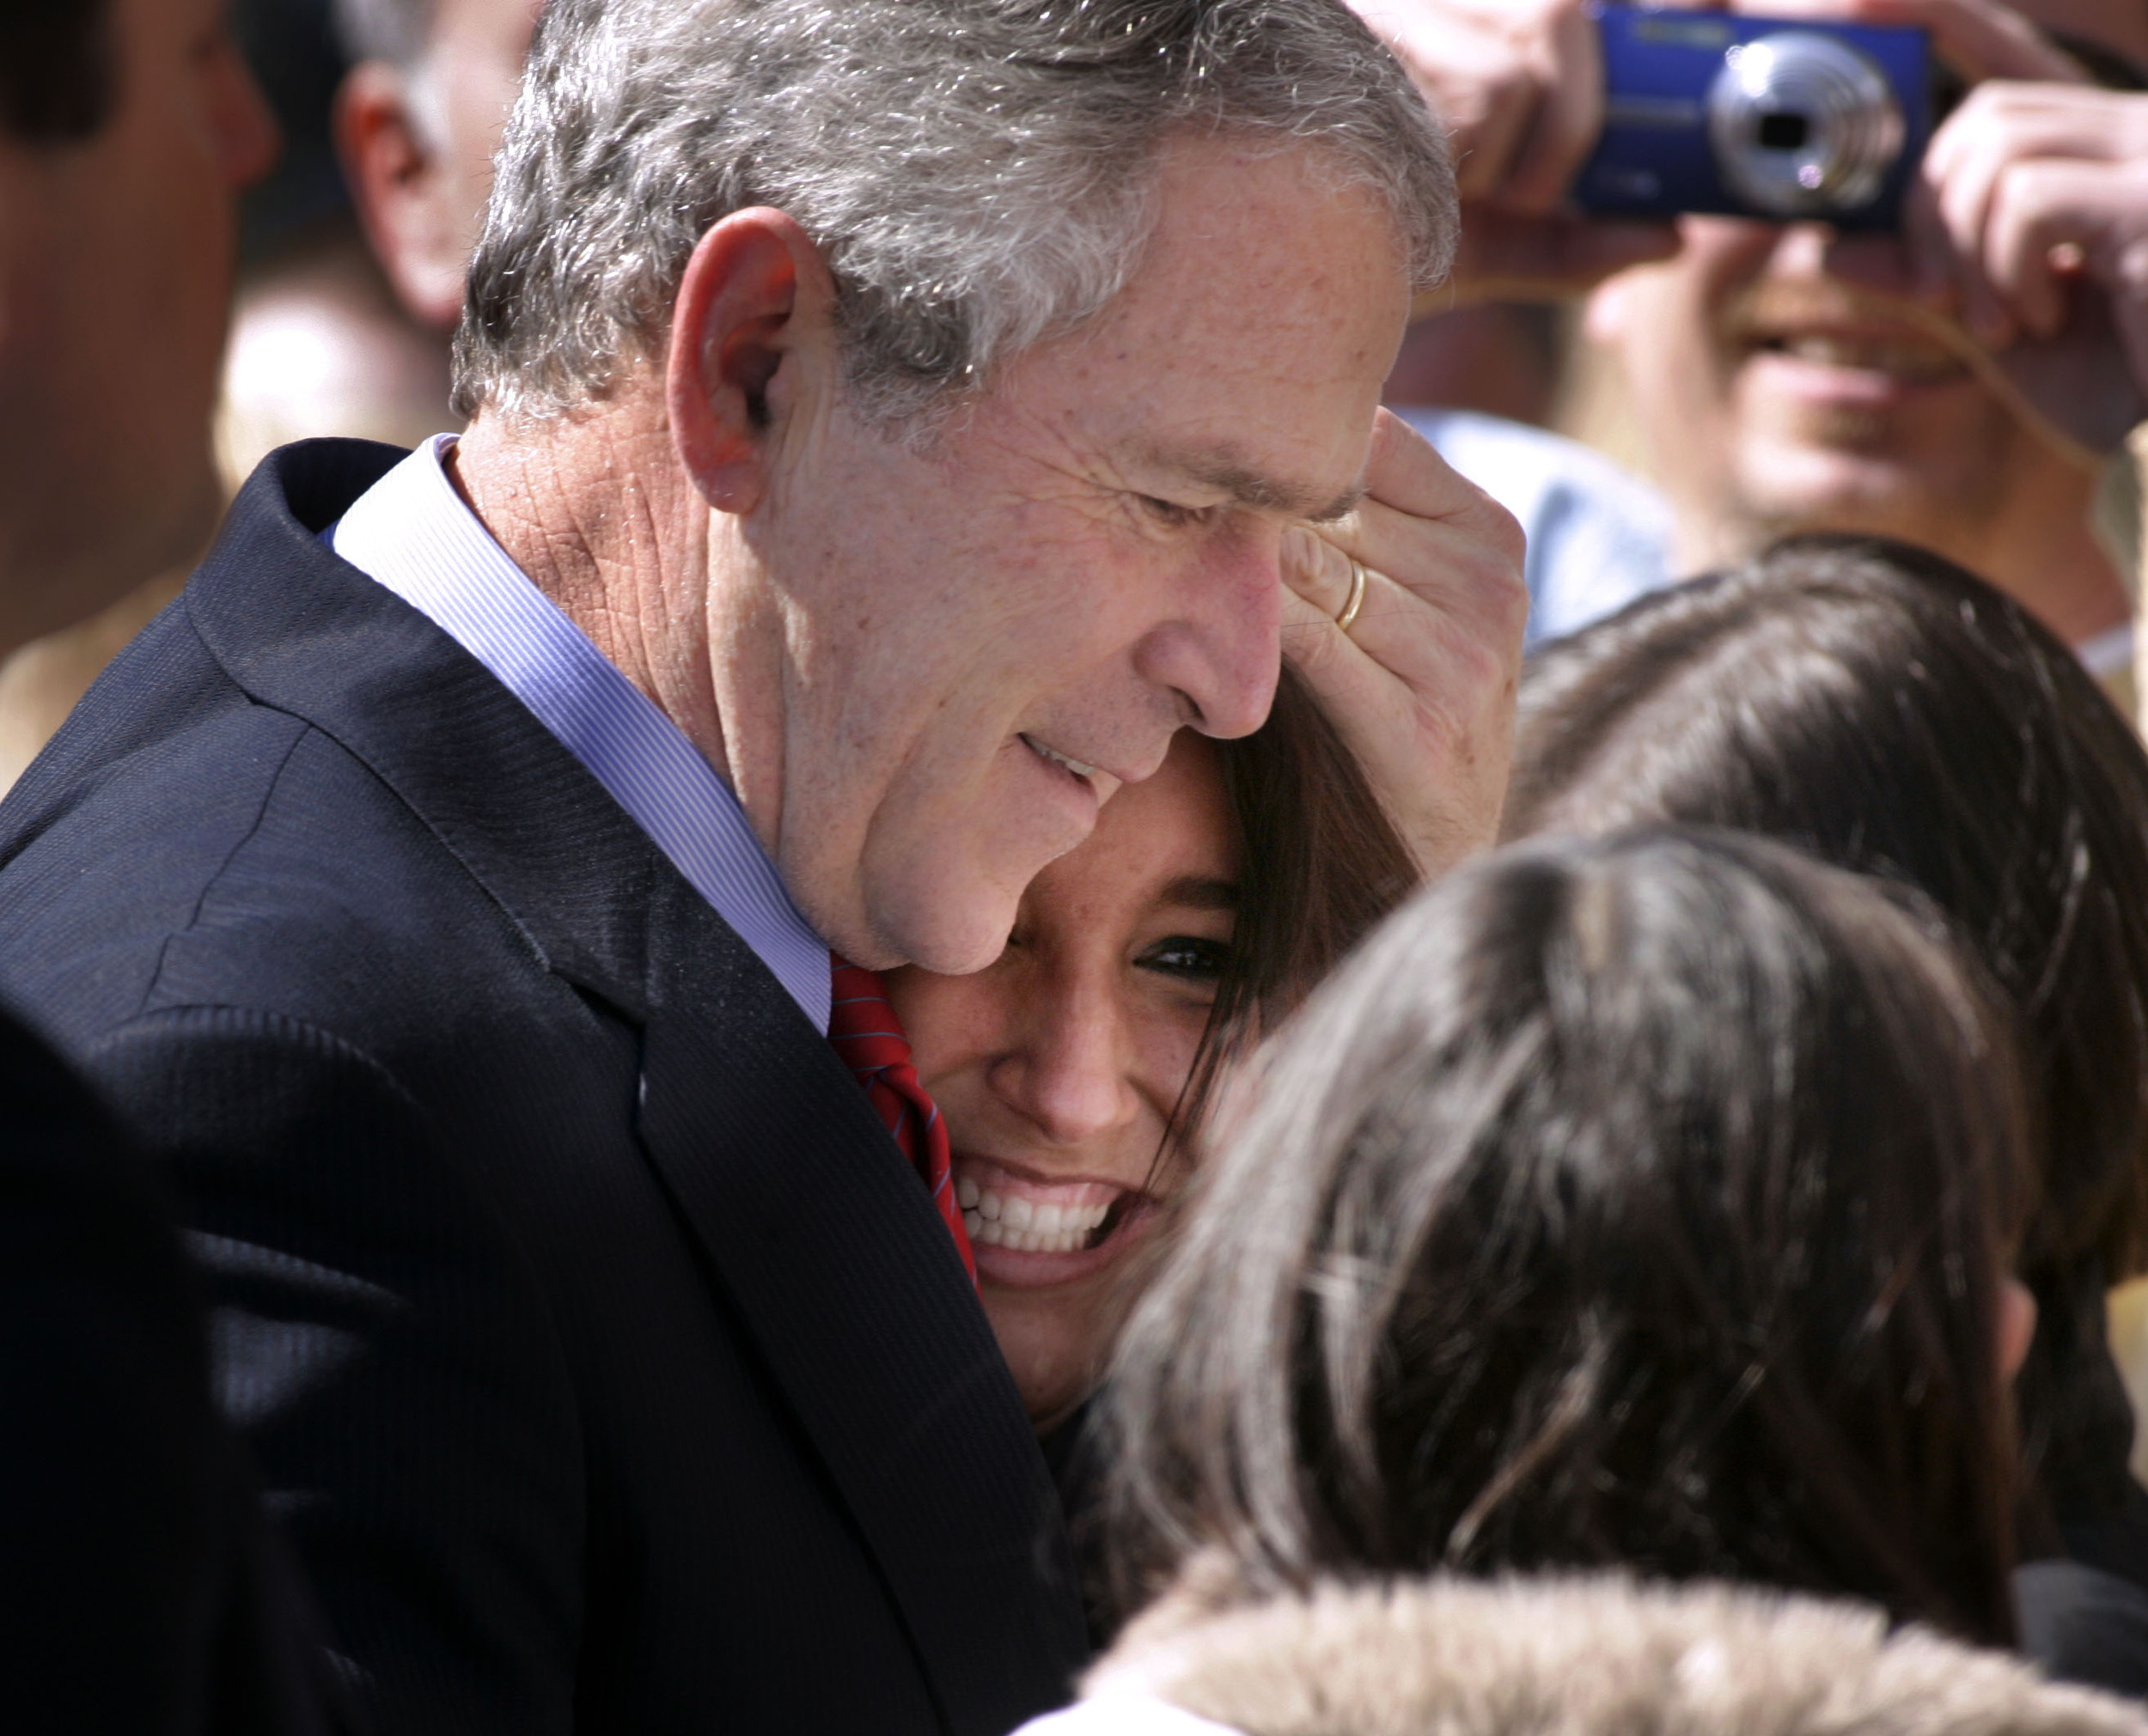 President George W. Bush hugs Courtney Harris of Lebanon before boarding Airforce One to depart Nashville  Tuesday, March 11, 2008 in Nashville, Tenn.